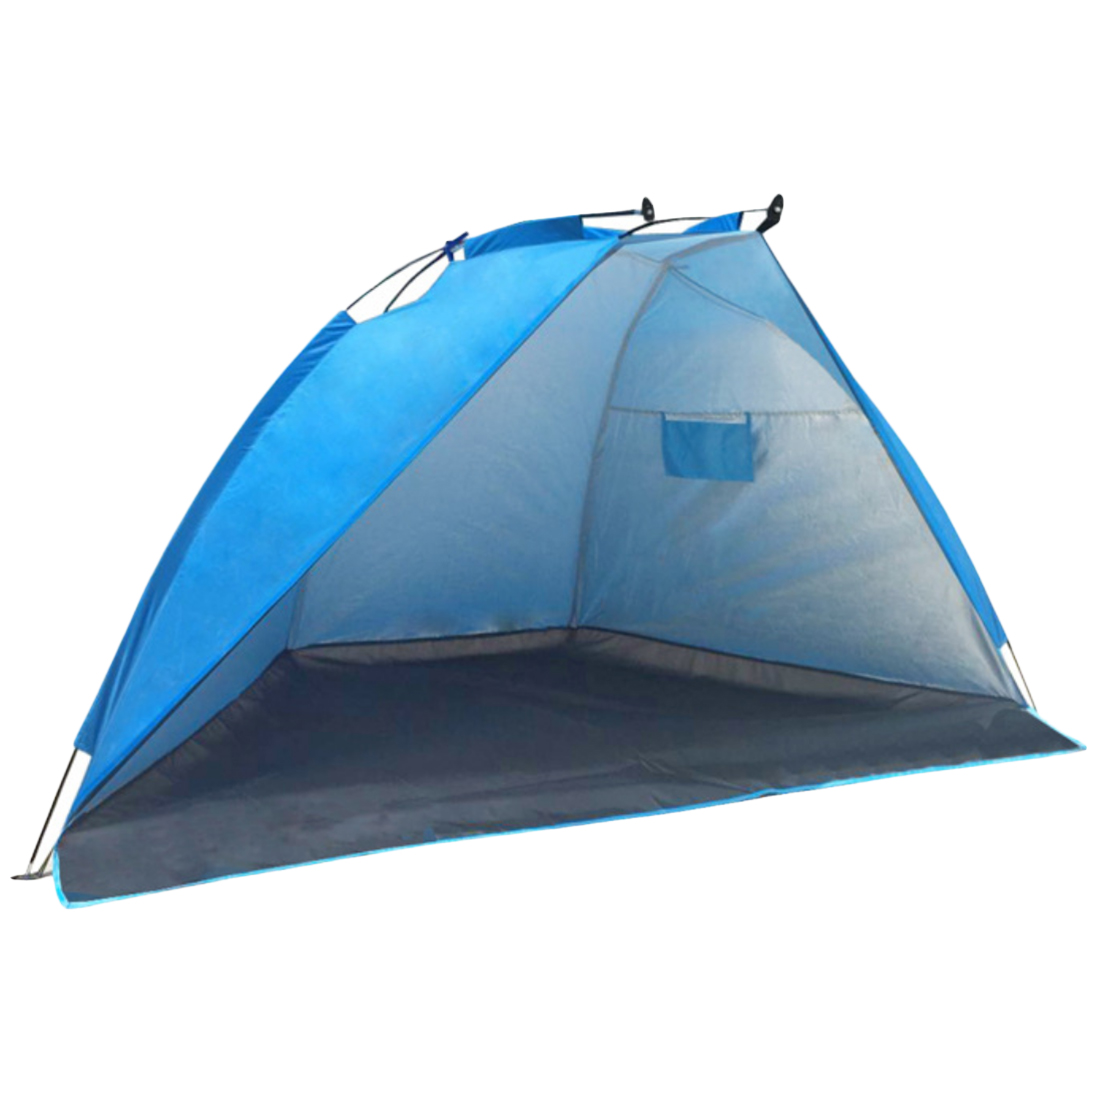 Portable Sports Canopy : Outdoor camping hiking tent portable beach sun